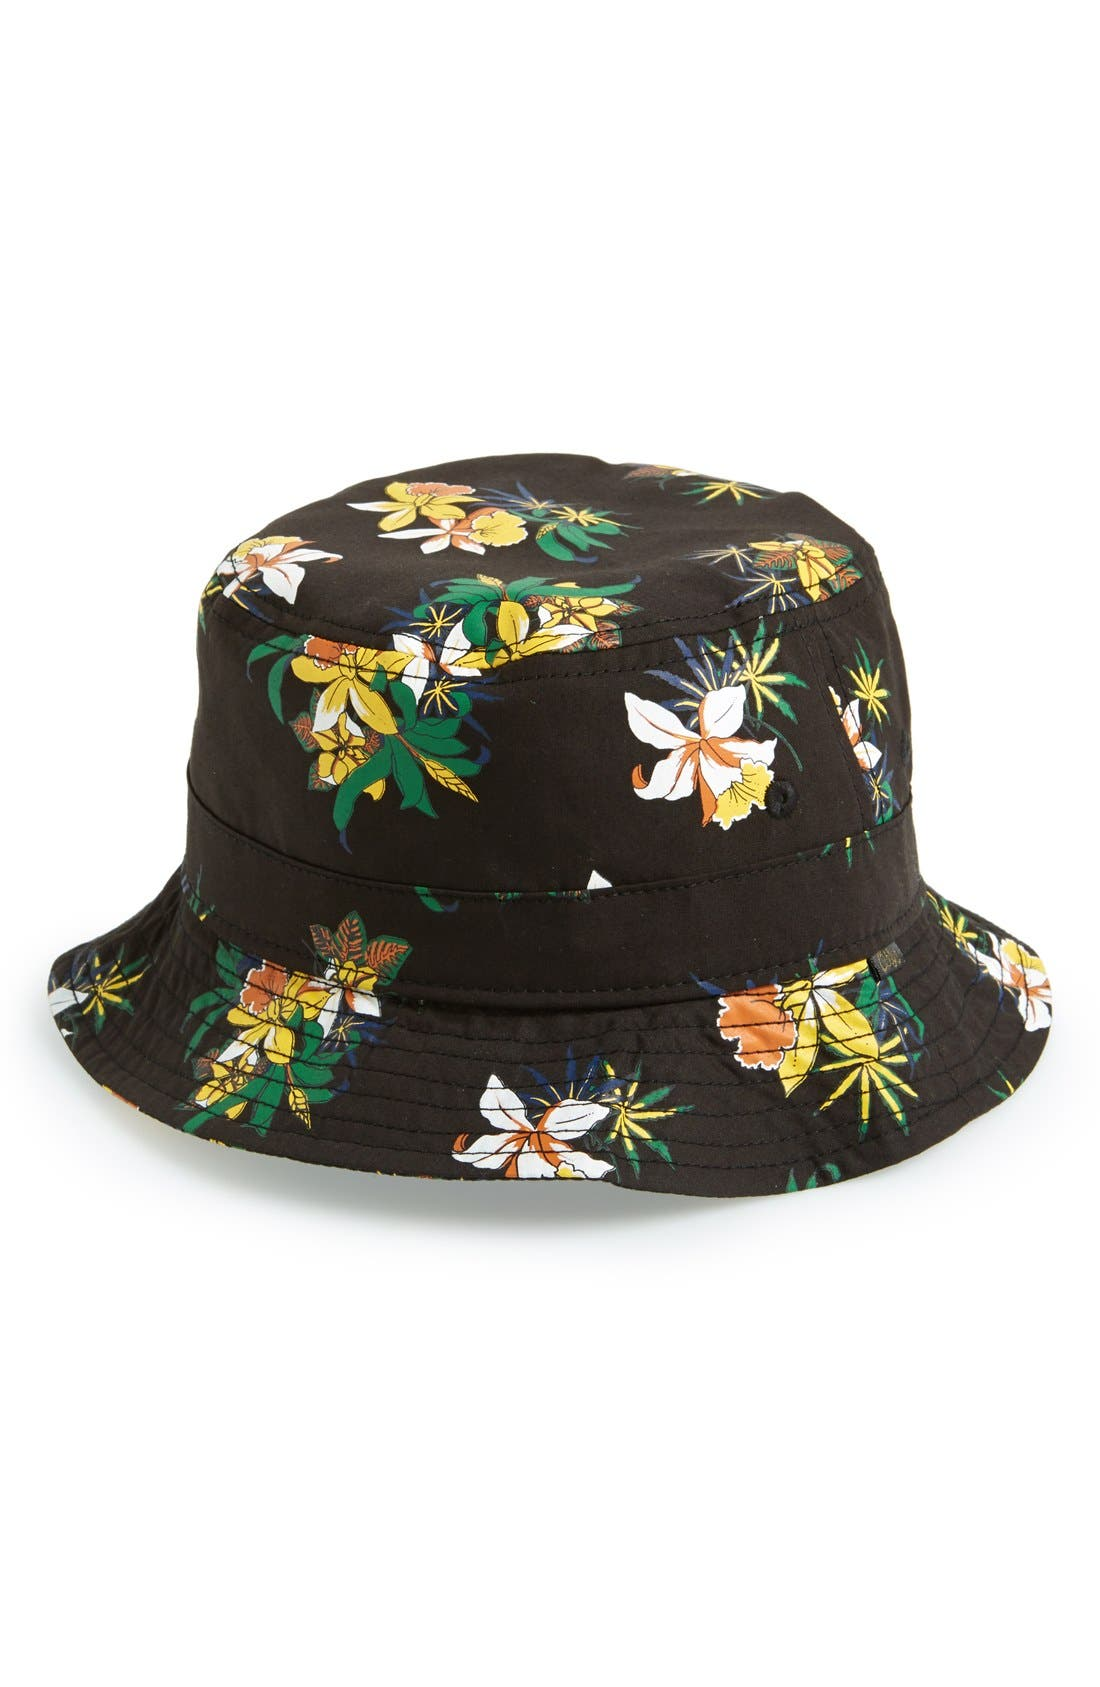 Alternate Image 1 Selected - Obey Floral Print Bucket Hat